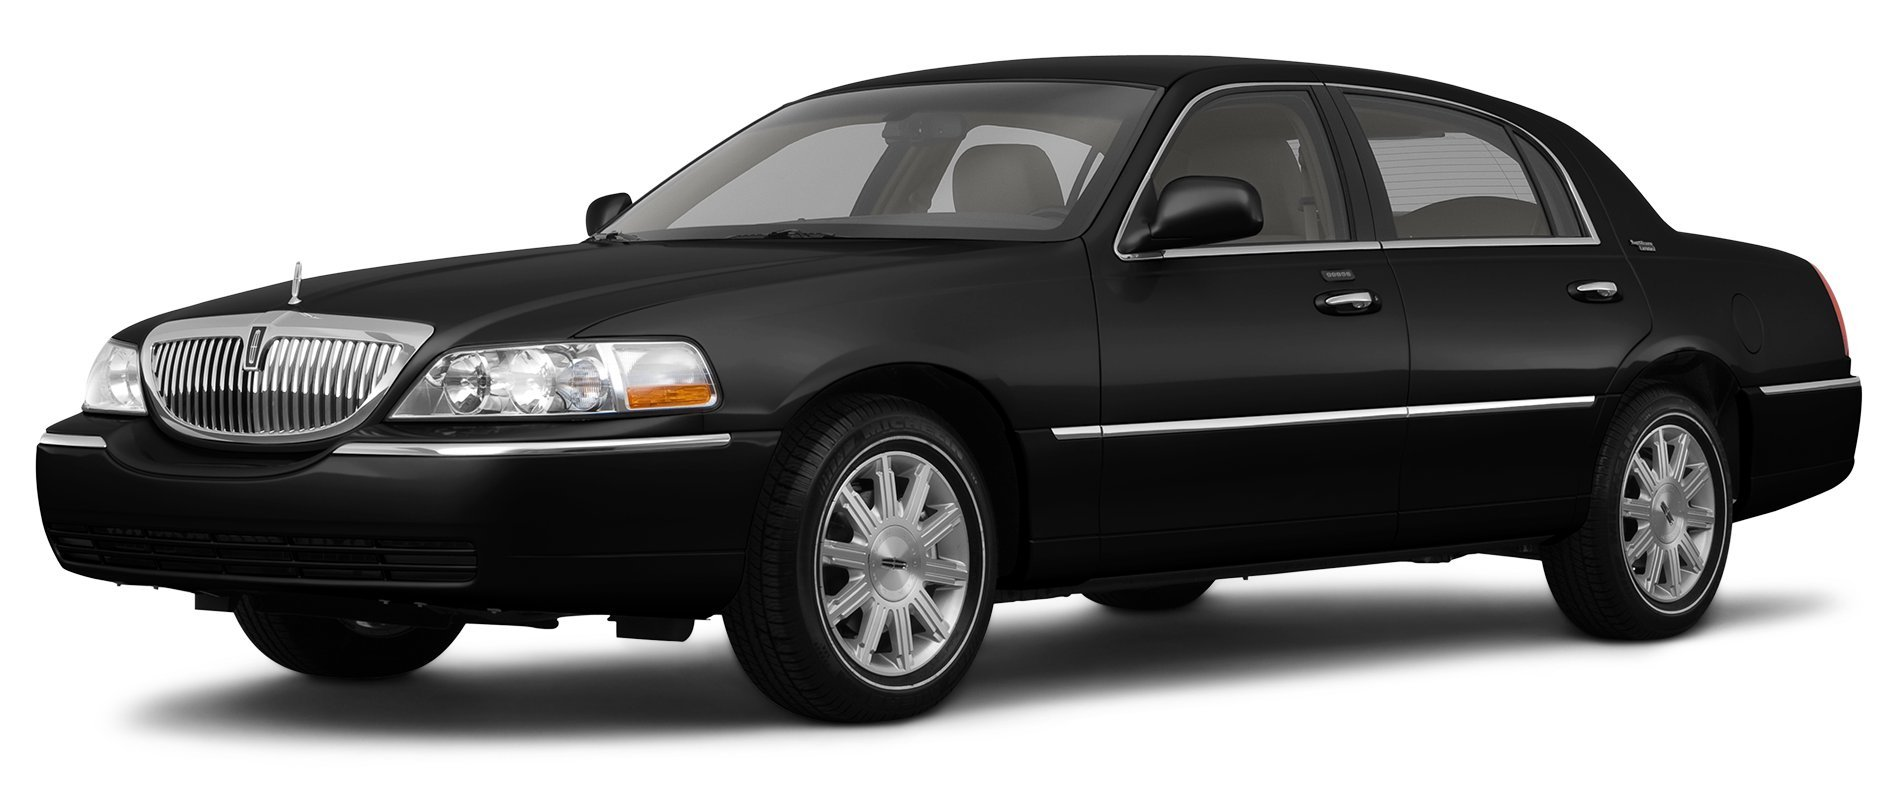 Amazon Com 2011 Lincoln Town Car Reviews Images And